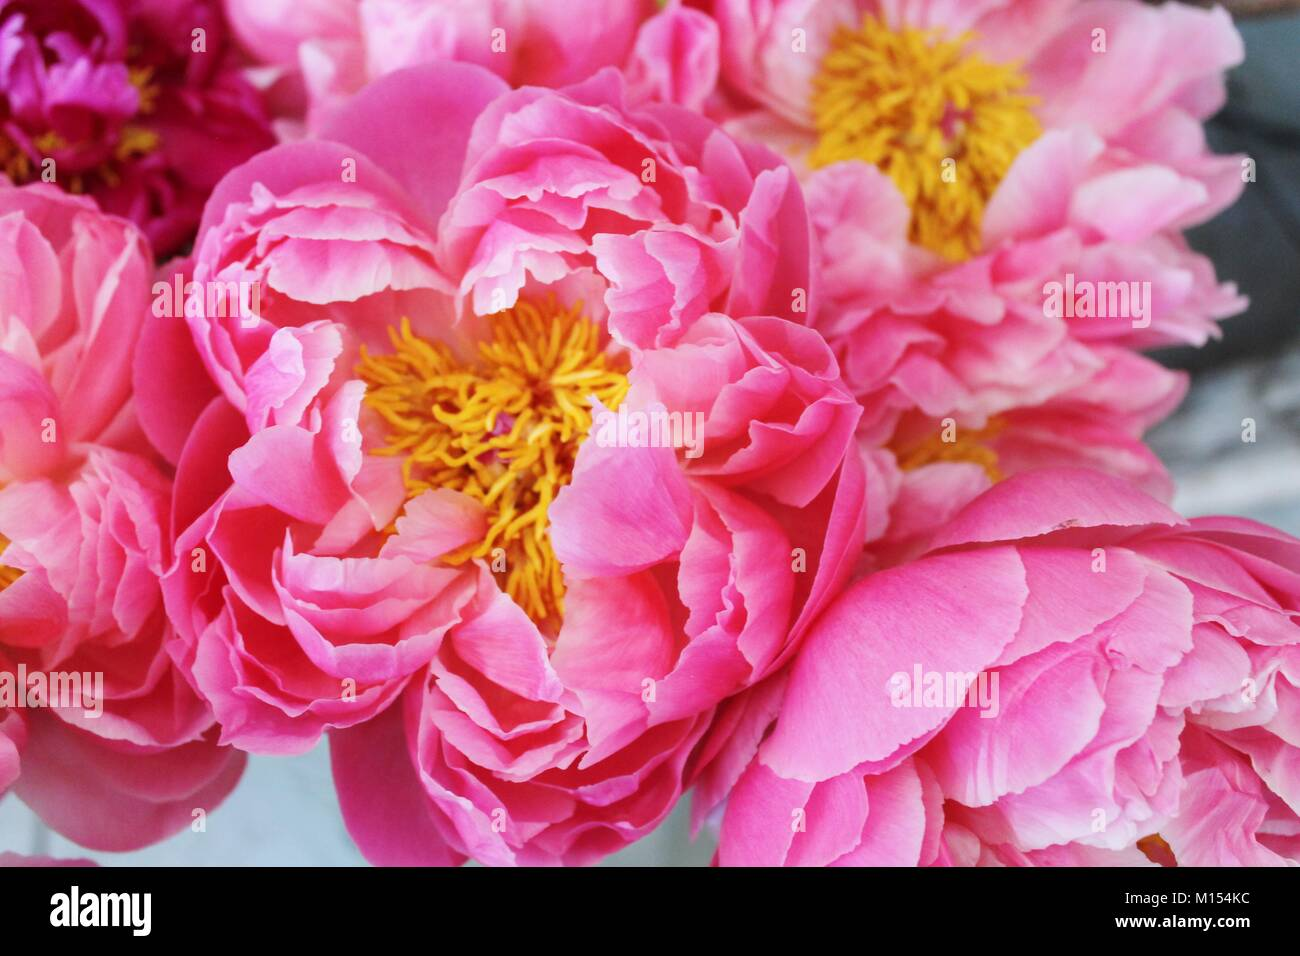 beautiful bunch of bright pink peonies in bloom - Stock Image